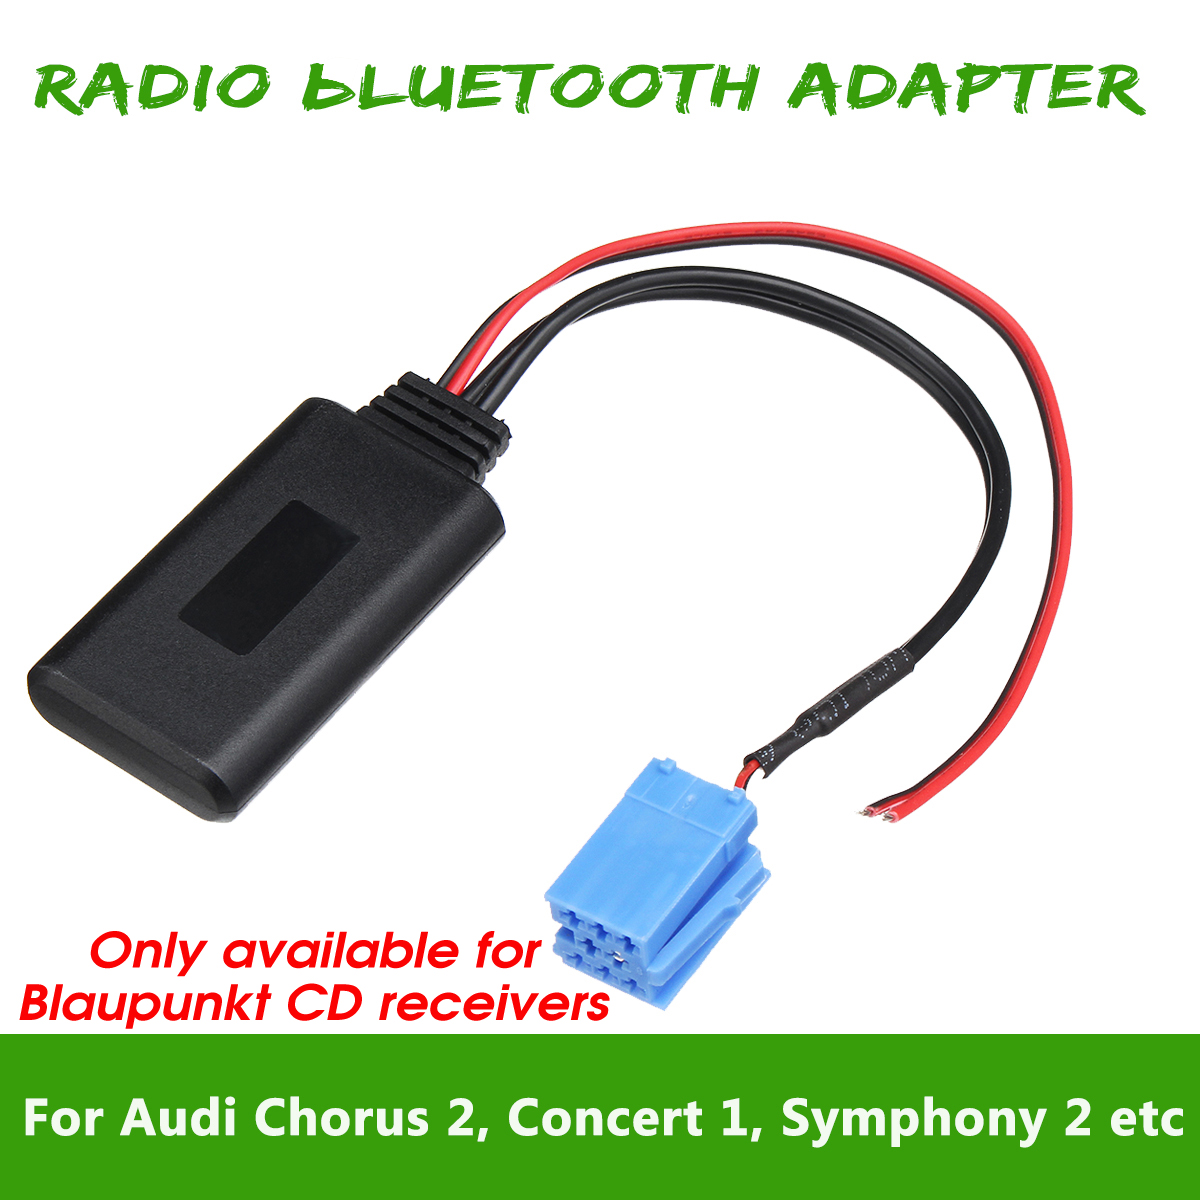 Details about bluetooth Radio Adapter for AUDI Chorus 2 Symphony 1 For  Blaupunkt CD receivers